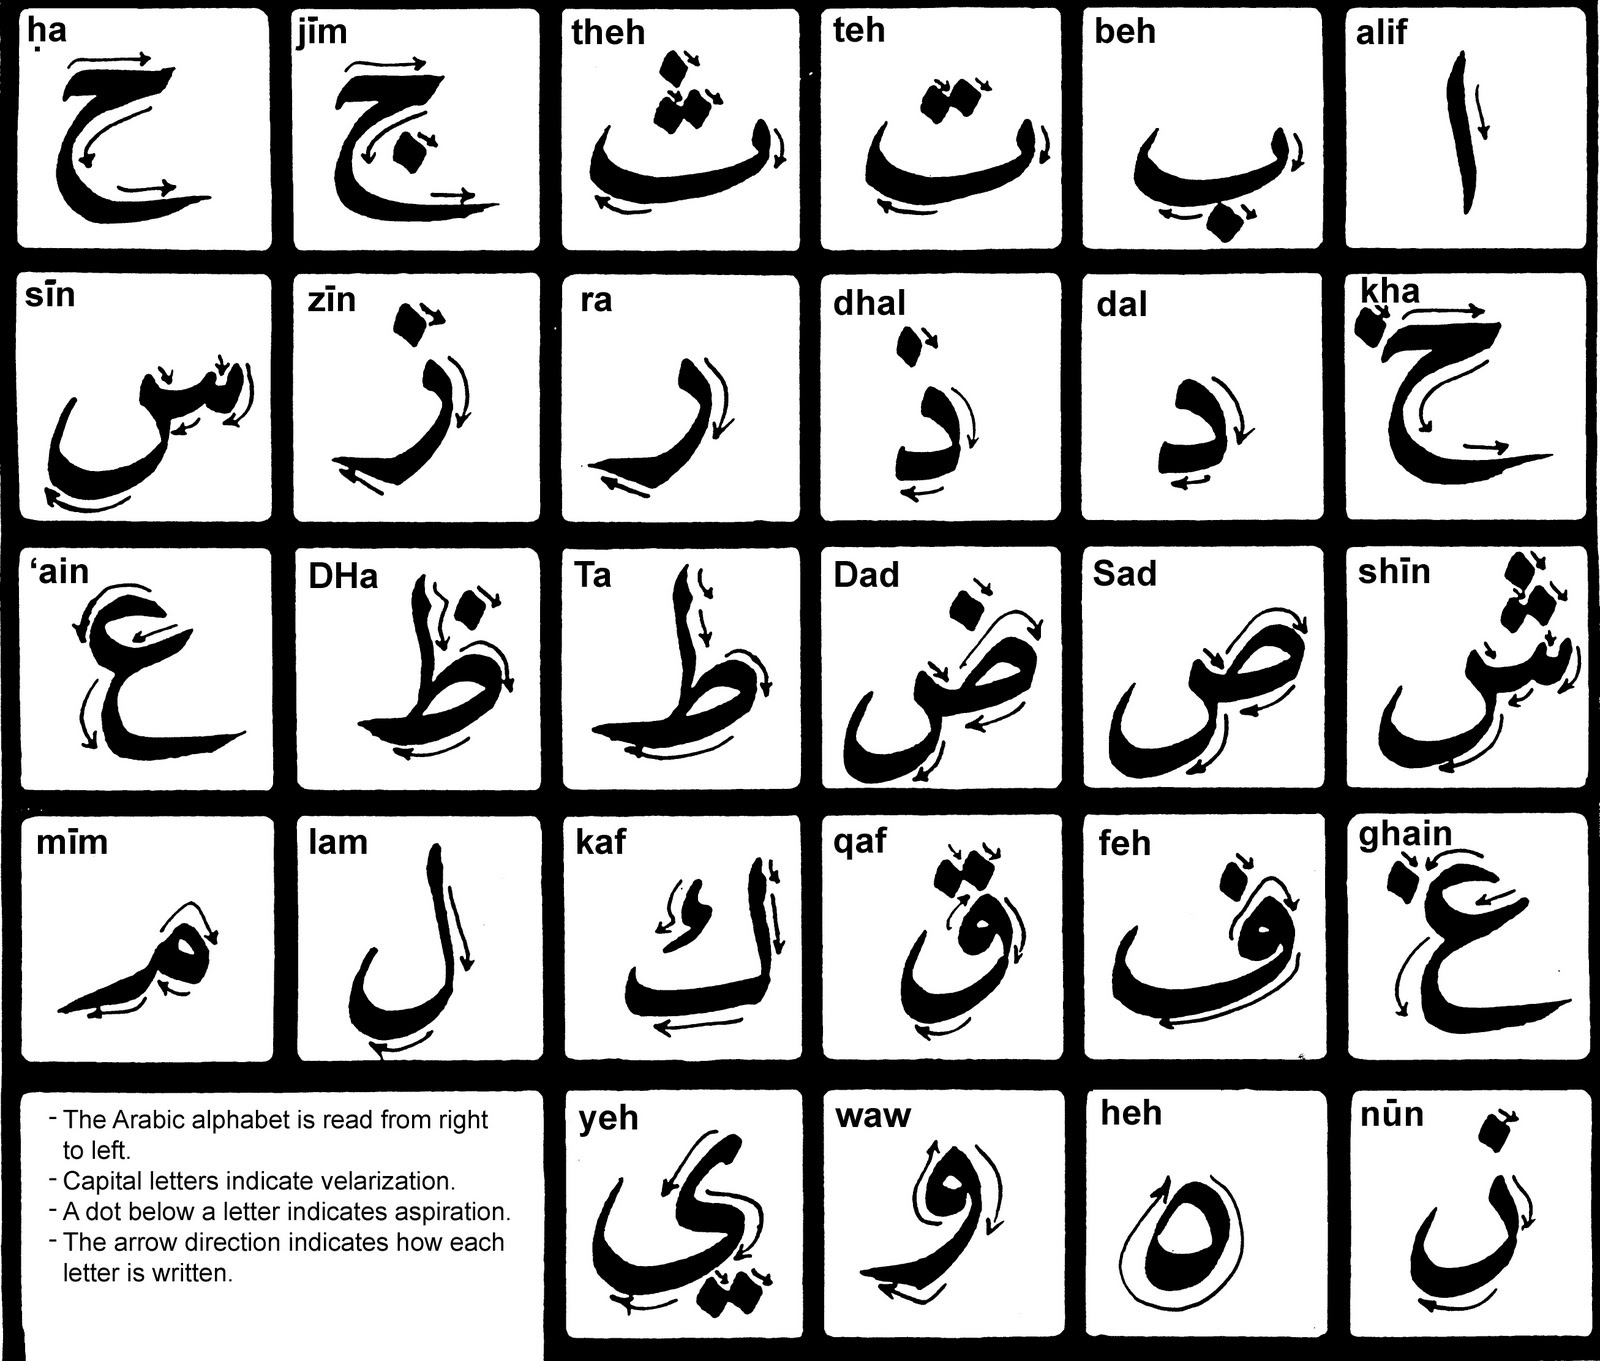 Anthropology 1200: Writing in Arabic